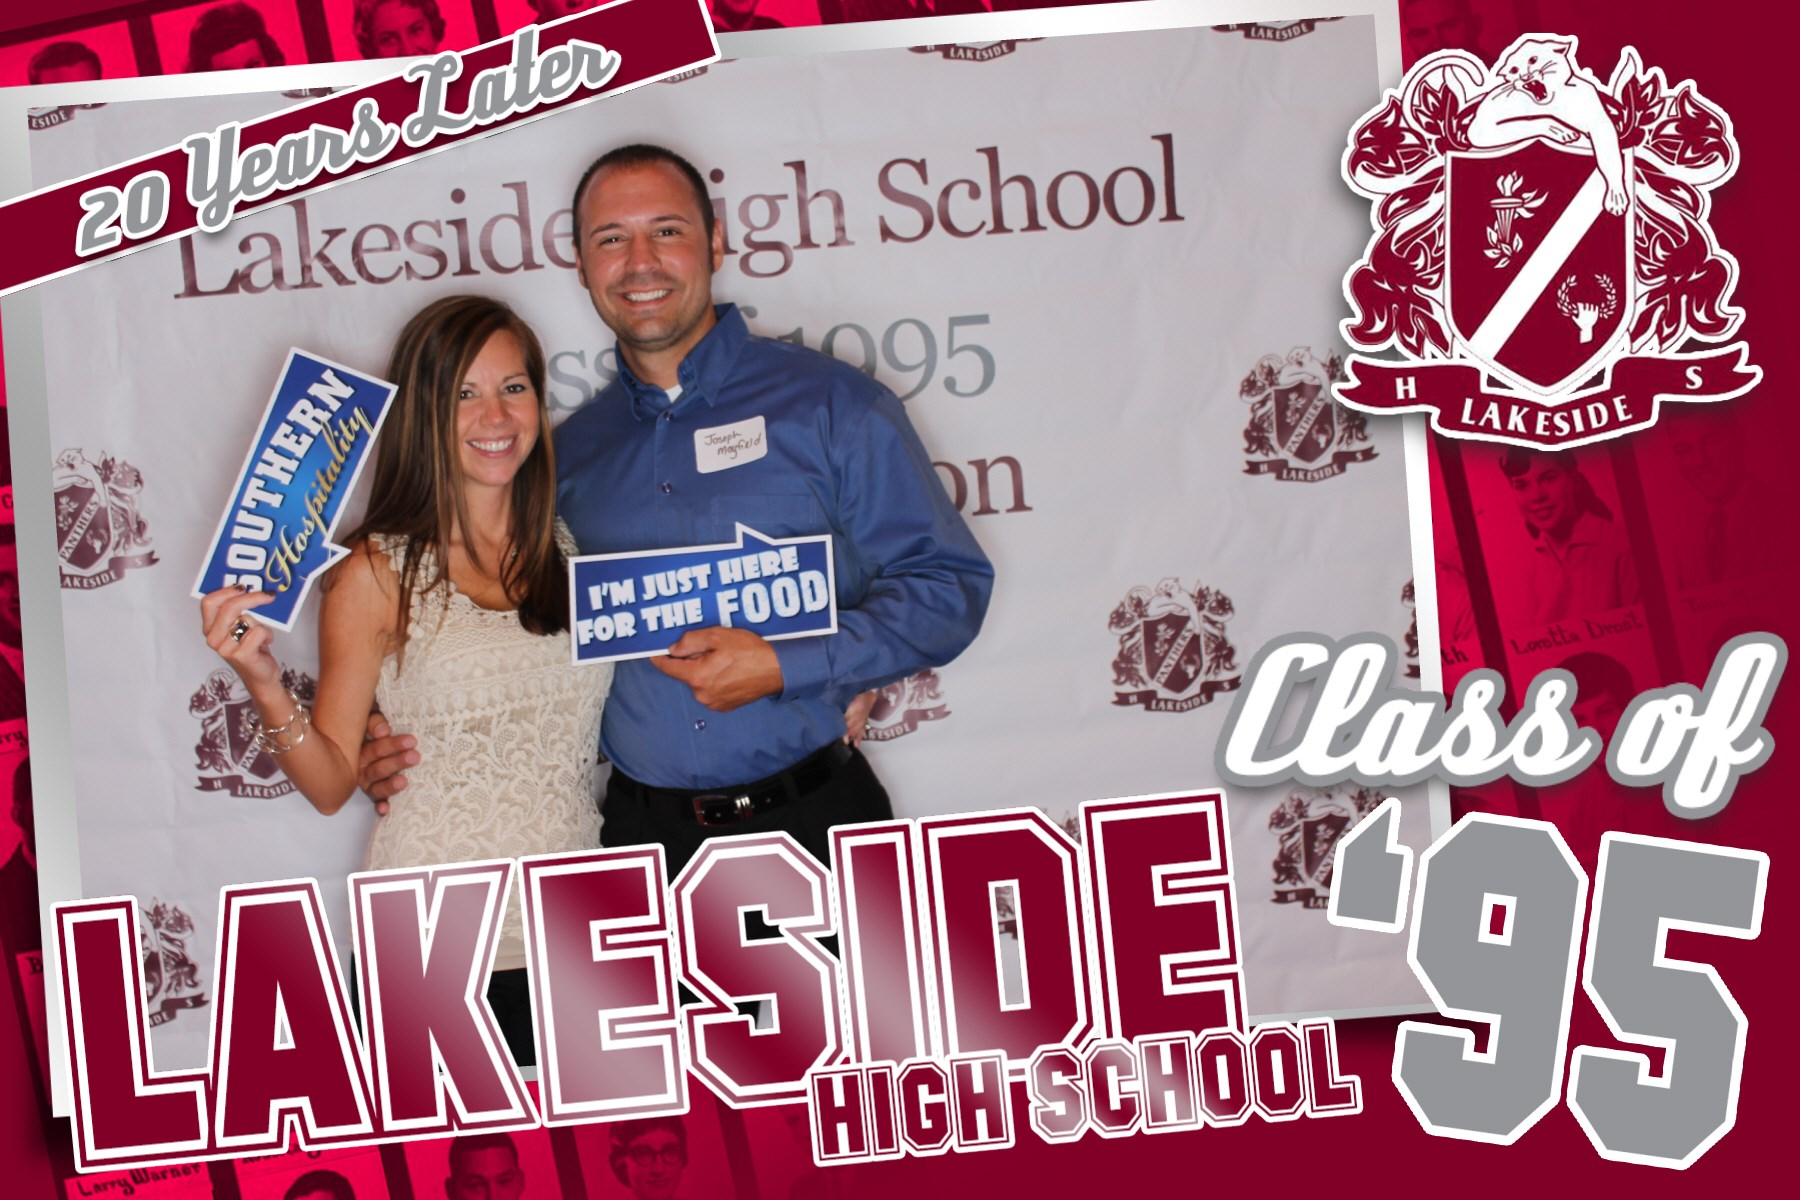 Lakeside High School Class Reunion